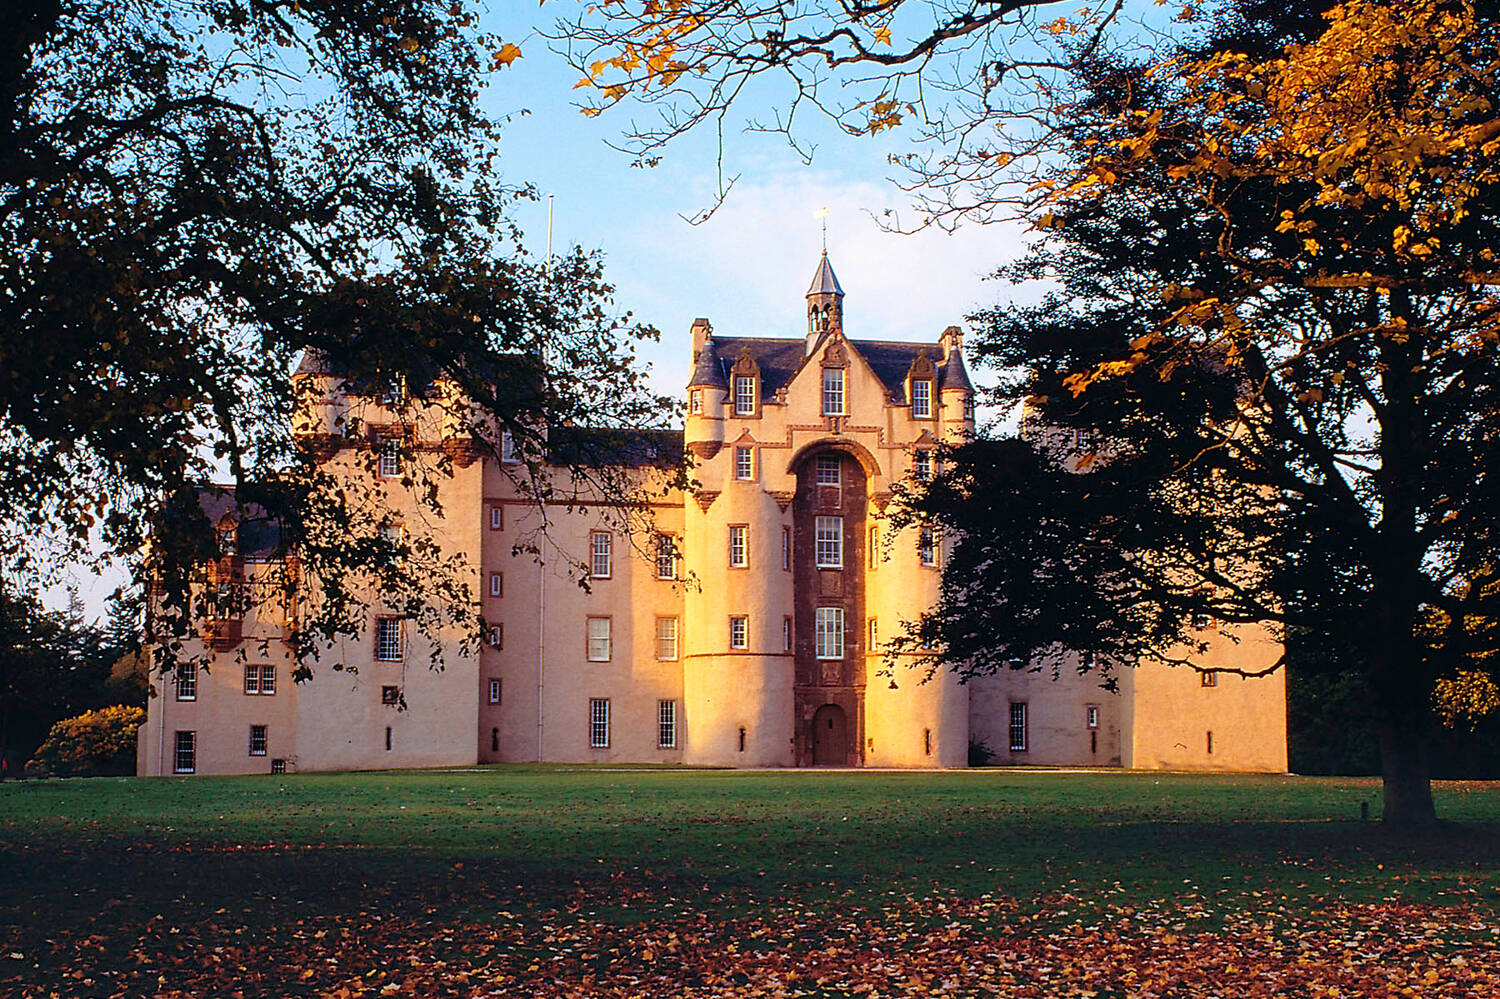 A view of the exterior of Fyvie Castle, lit by the early morning sun.